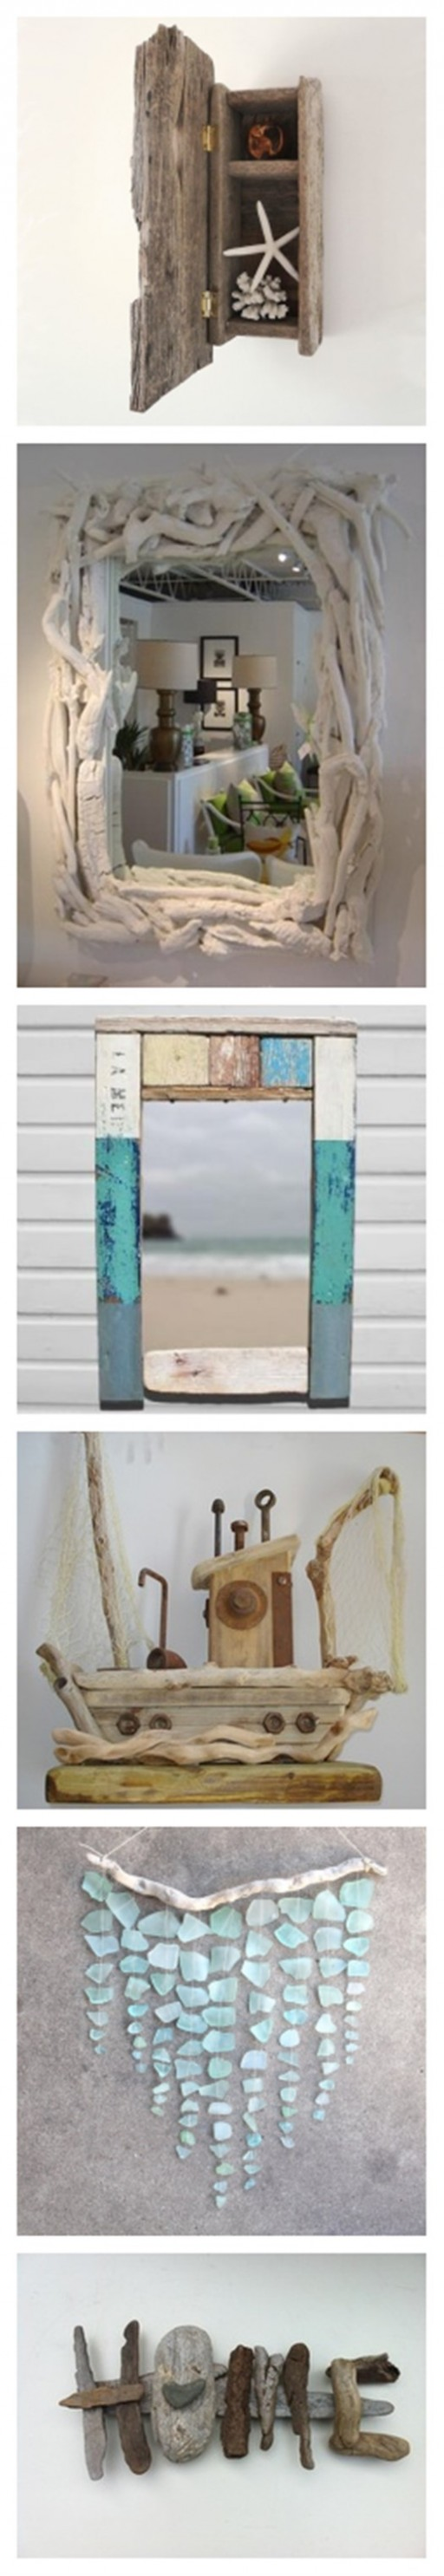 Inspirational Crafts With Beach Driftwood And Sea Glasses 1